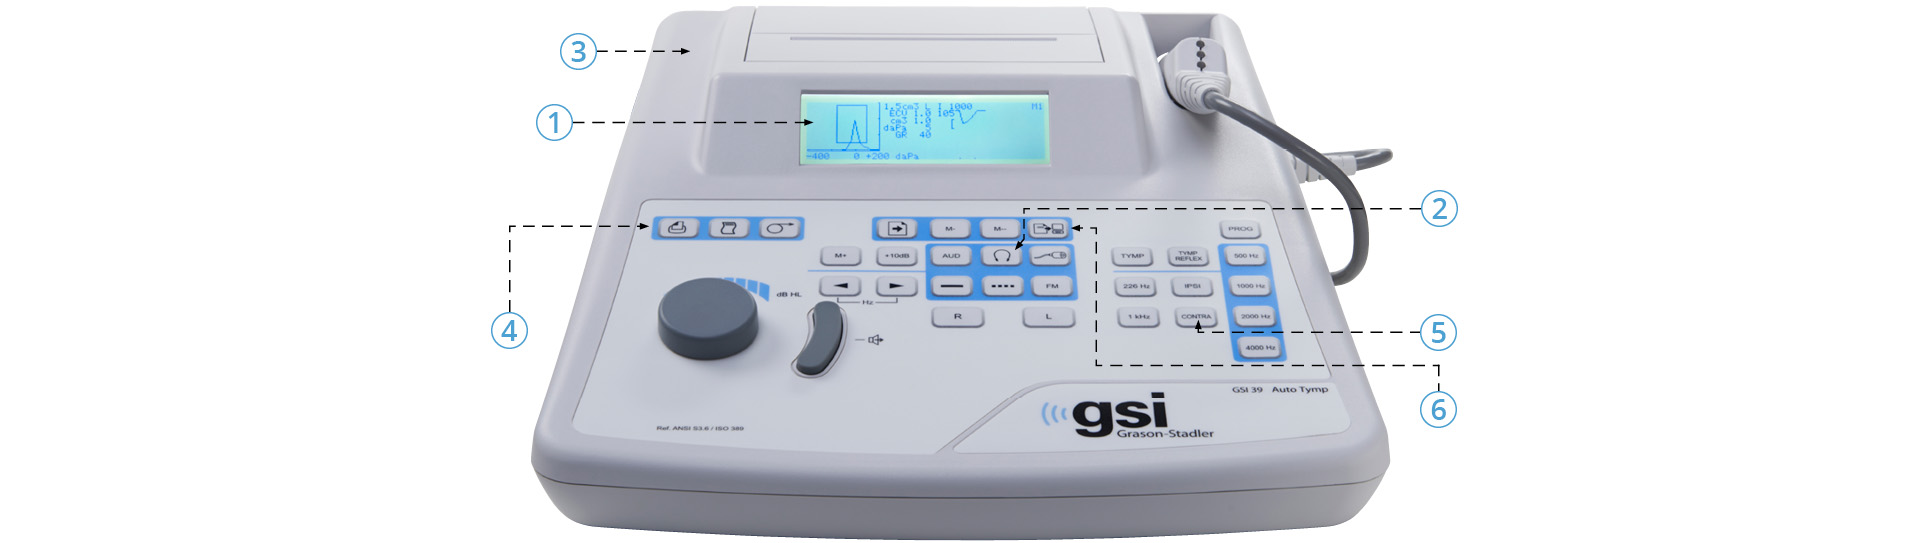 GSI 39 Product Features